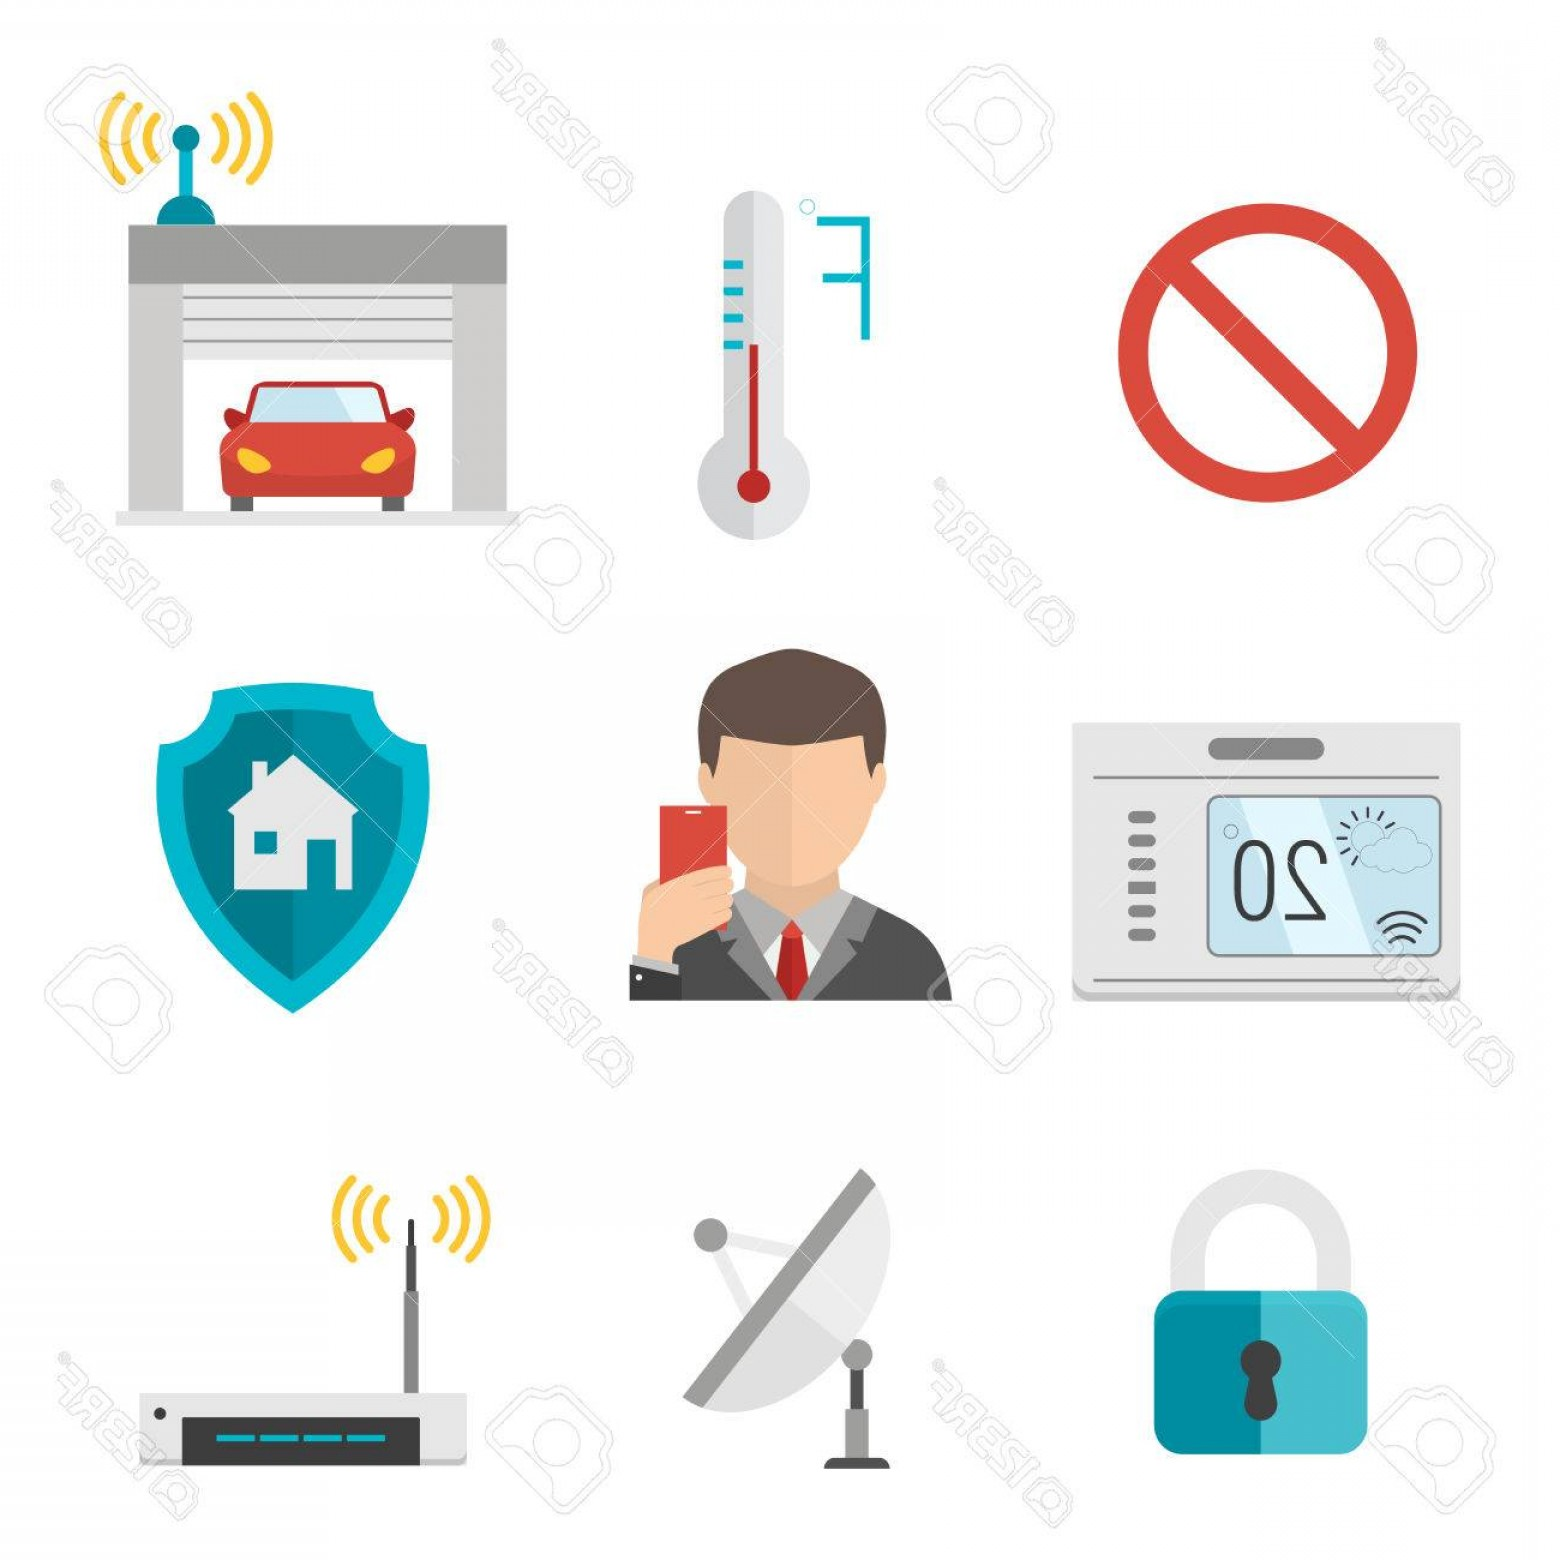 Smart Home Remote Vector: Photostock Vector Remote Home Control System Smart House Vector Illustration Icons Remote Control Smart Home Concept S